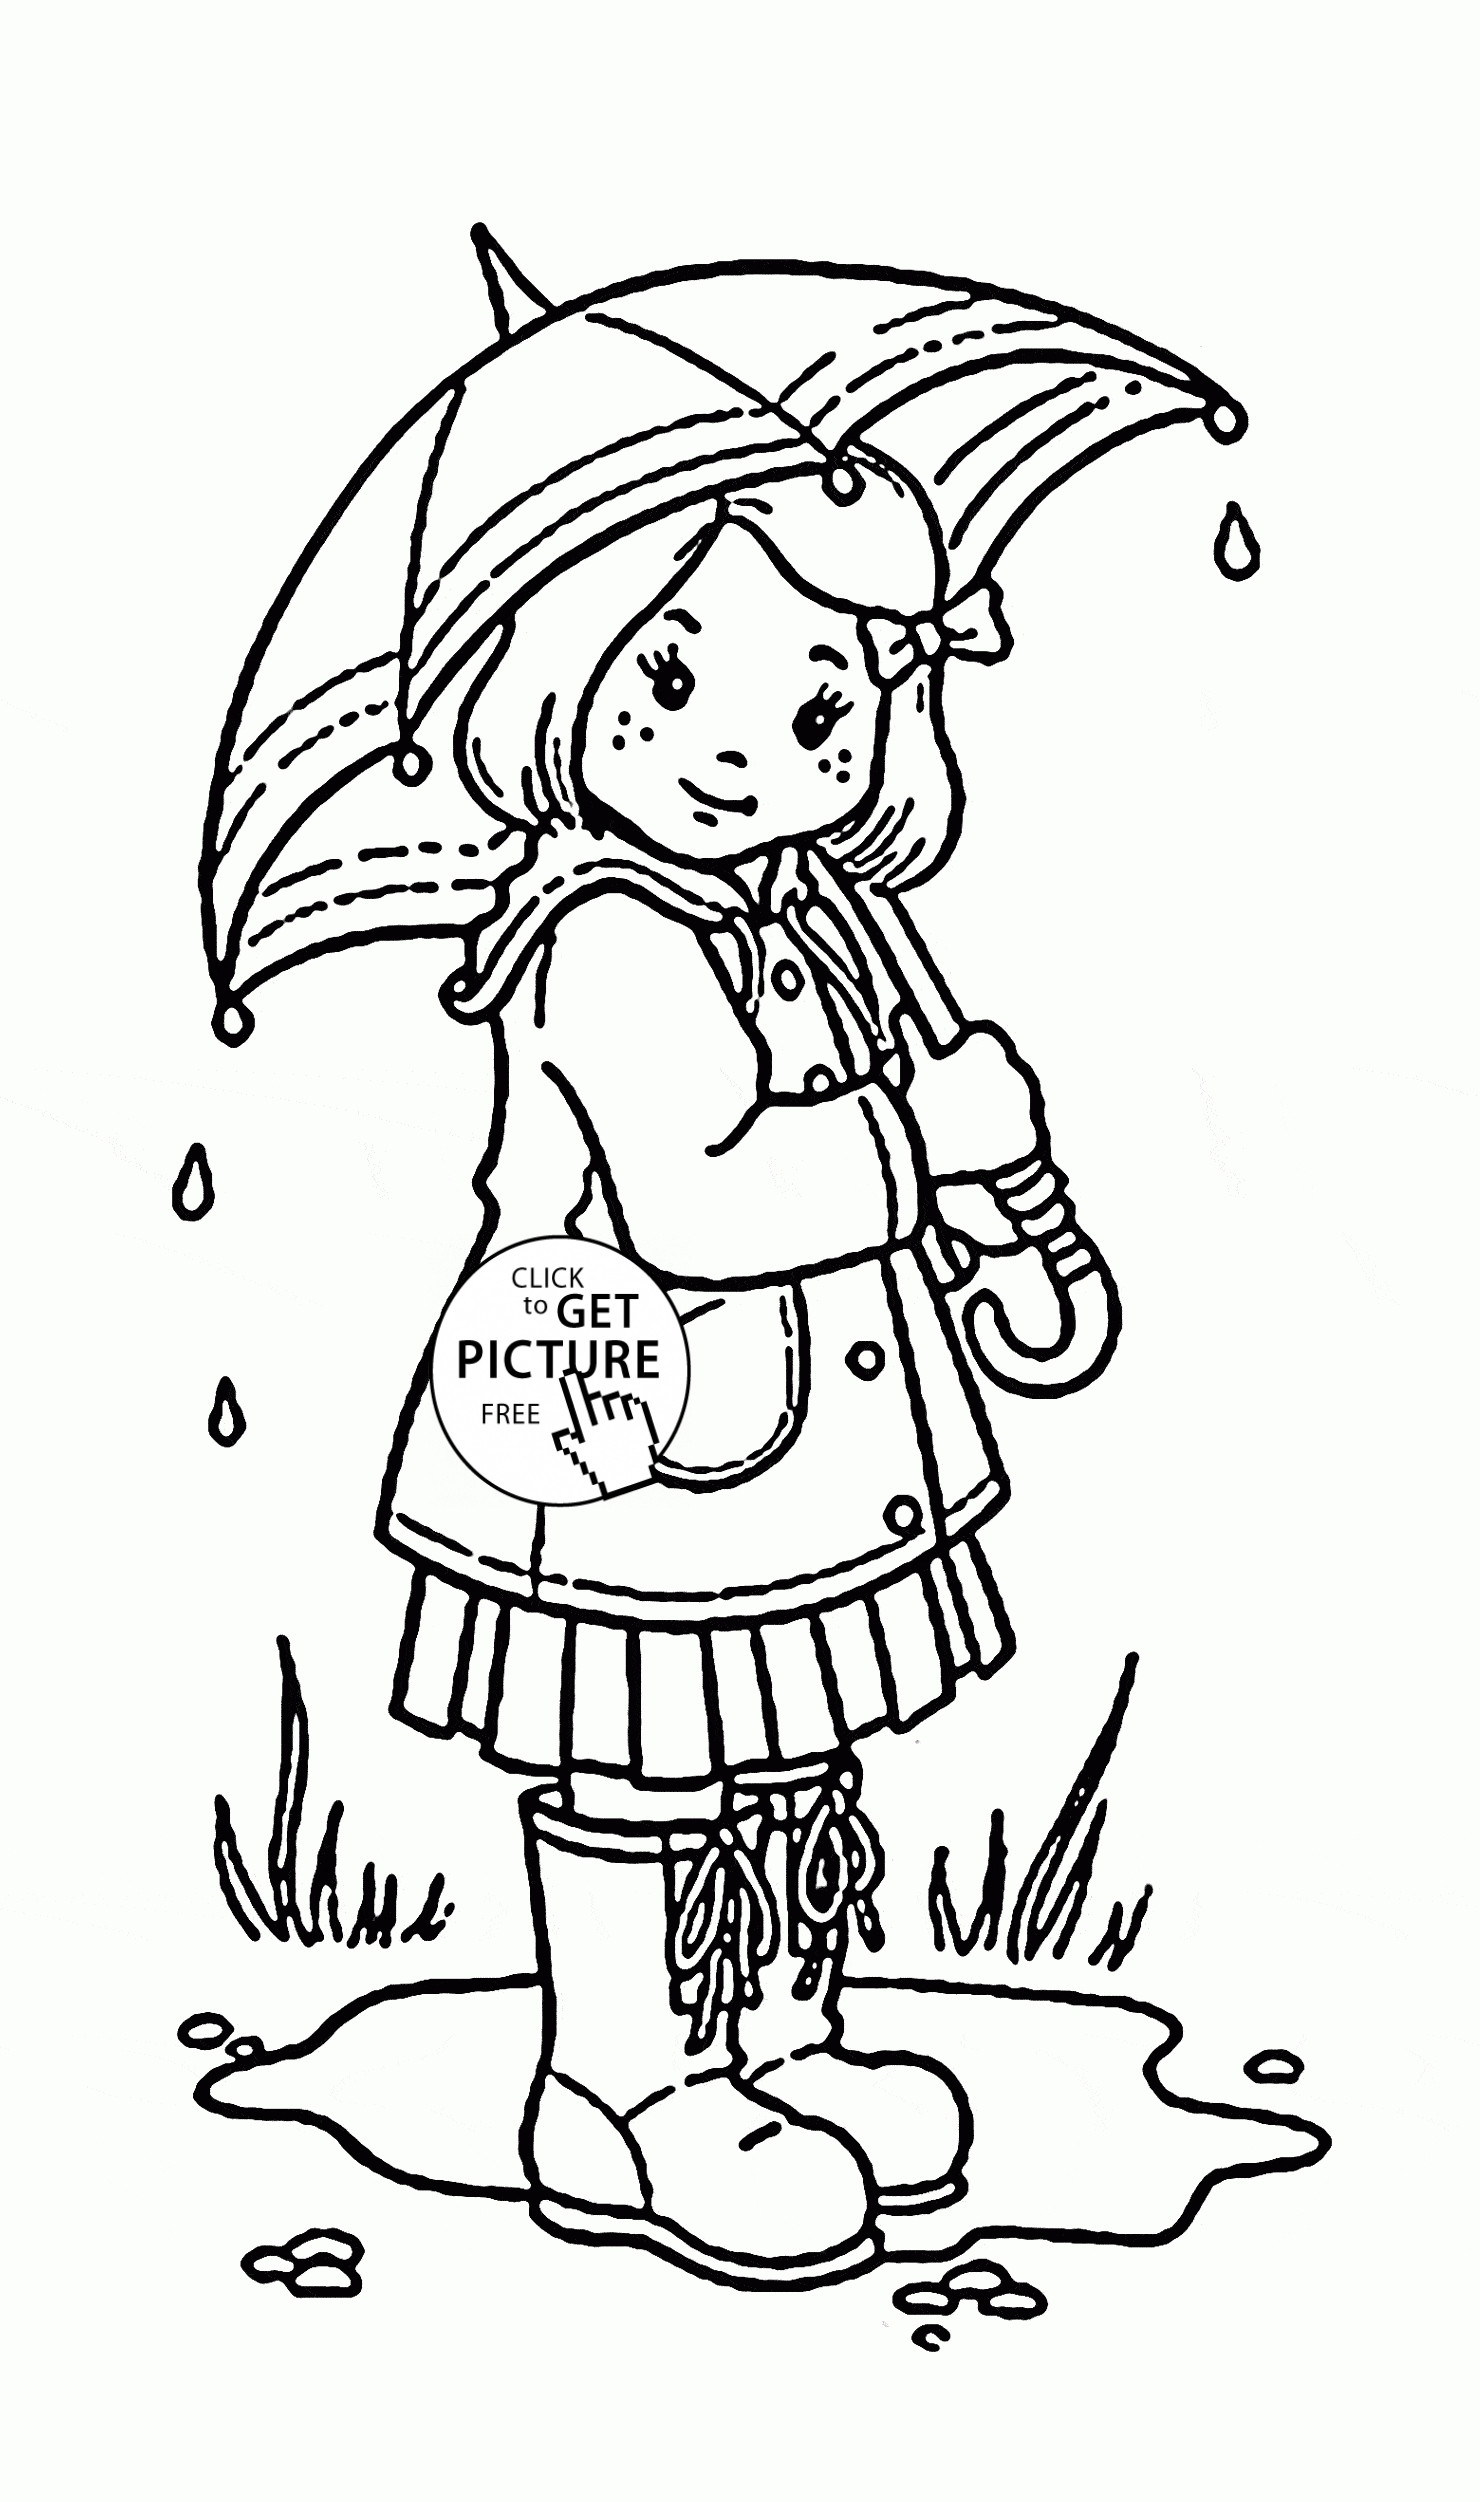 Coloring Pages For Girls And Boys To Print  Coloring Pages for Girls 10 and Up Nouveau Fresh Girl In